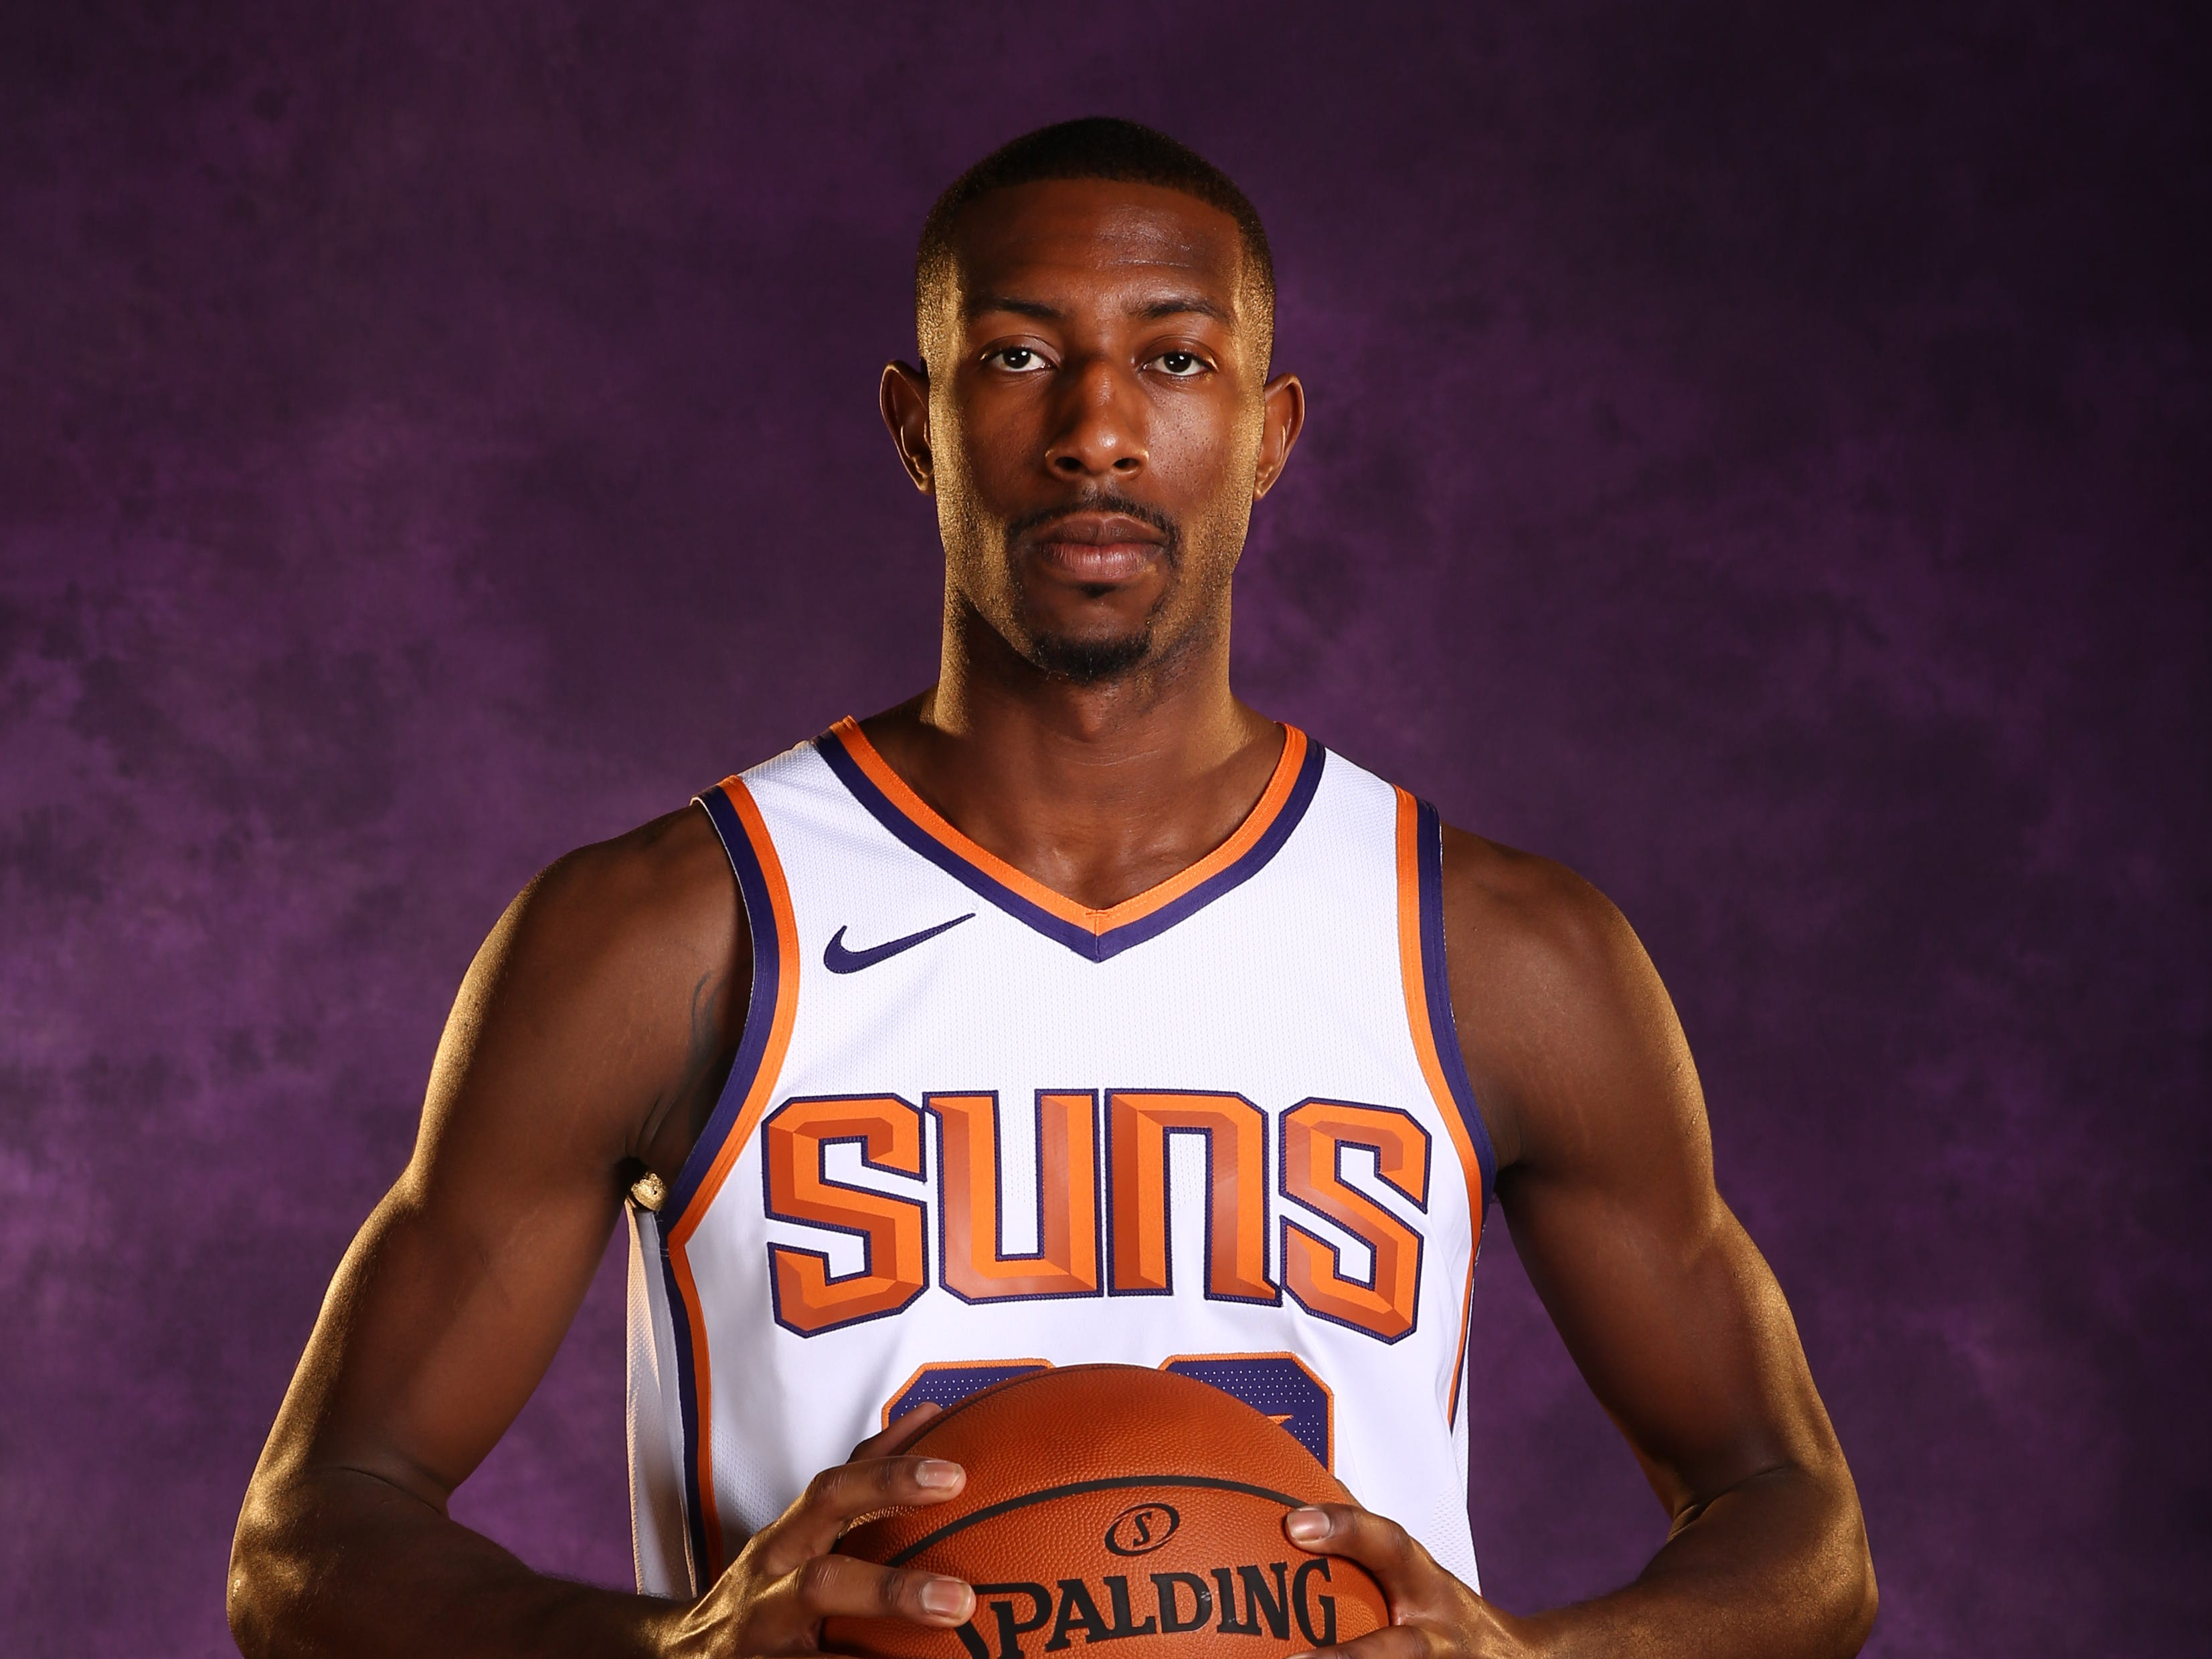 Phoenix Suns guard Davon Reed during media day at Talking Stick Resort Arena on Sep. 24, 2018, in Phoenix, Ariz.